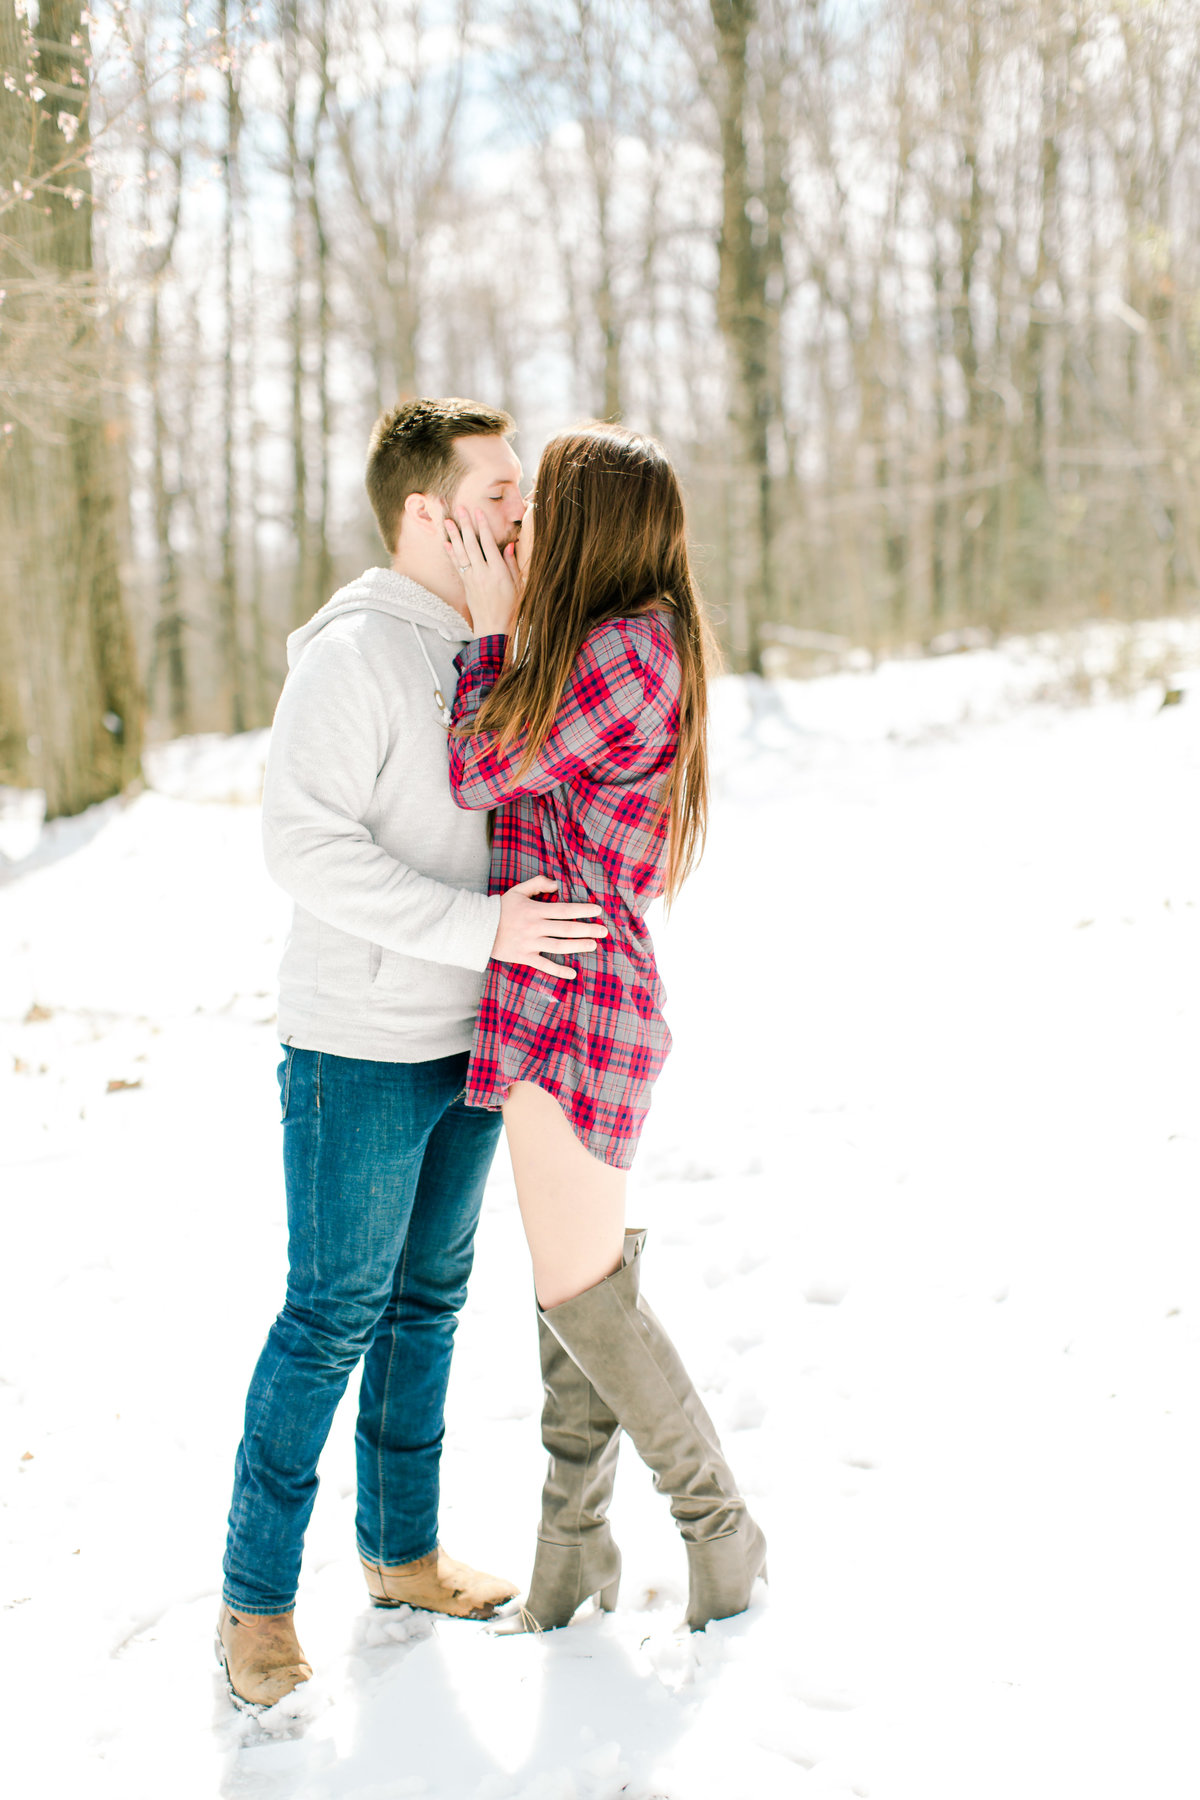 Winter Snowy Engagement Session in The Woods-9